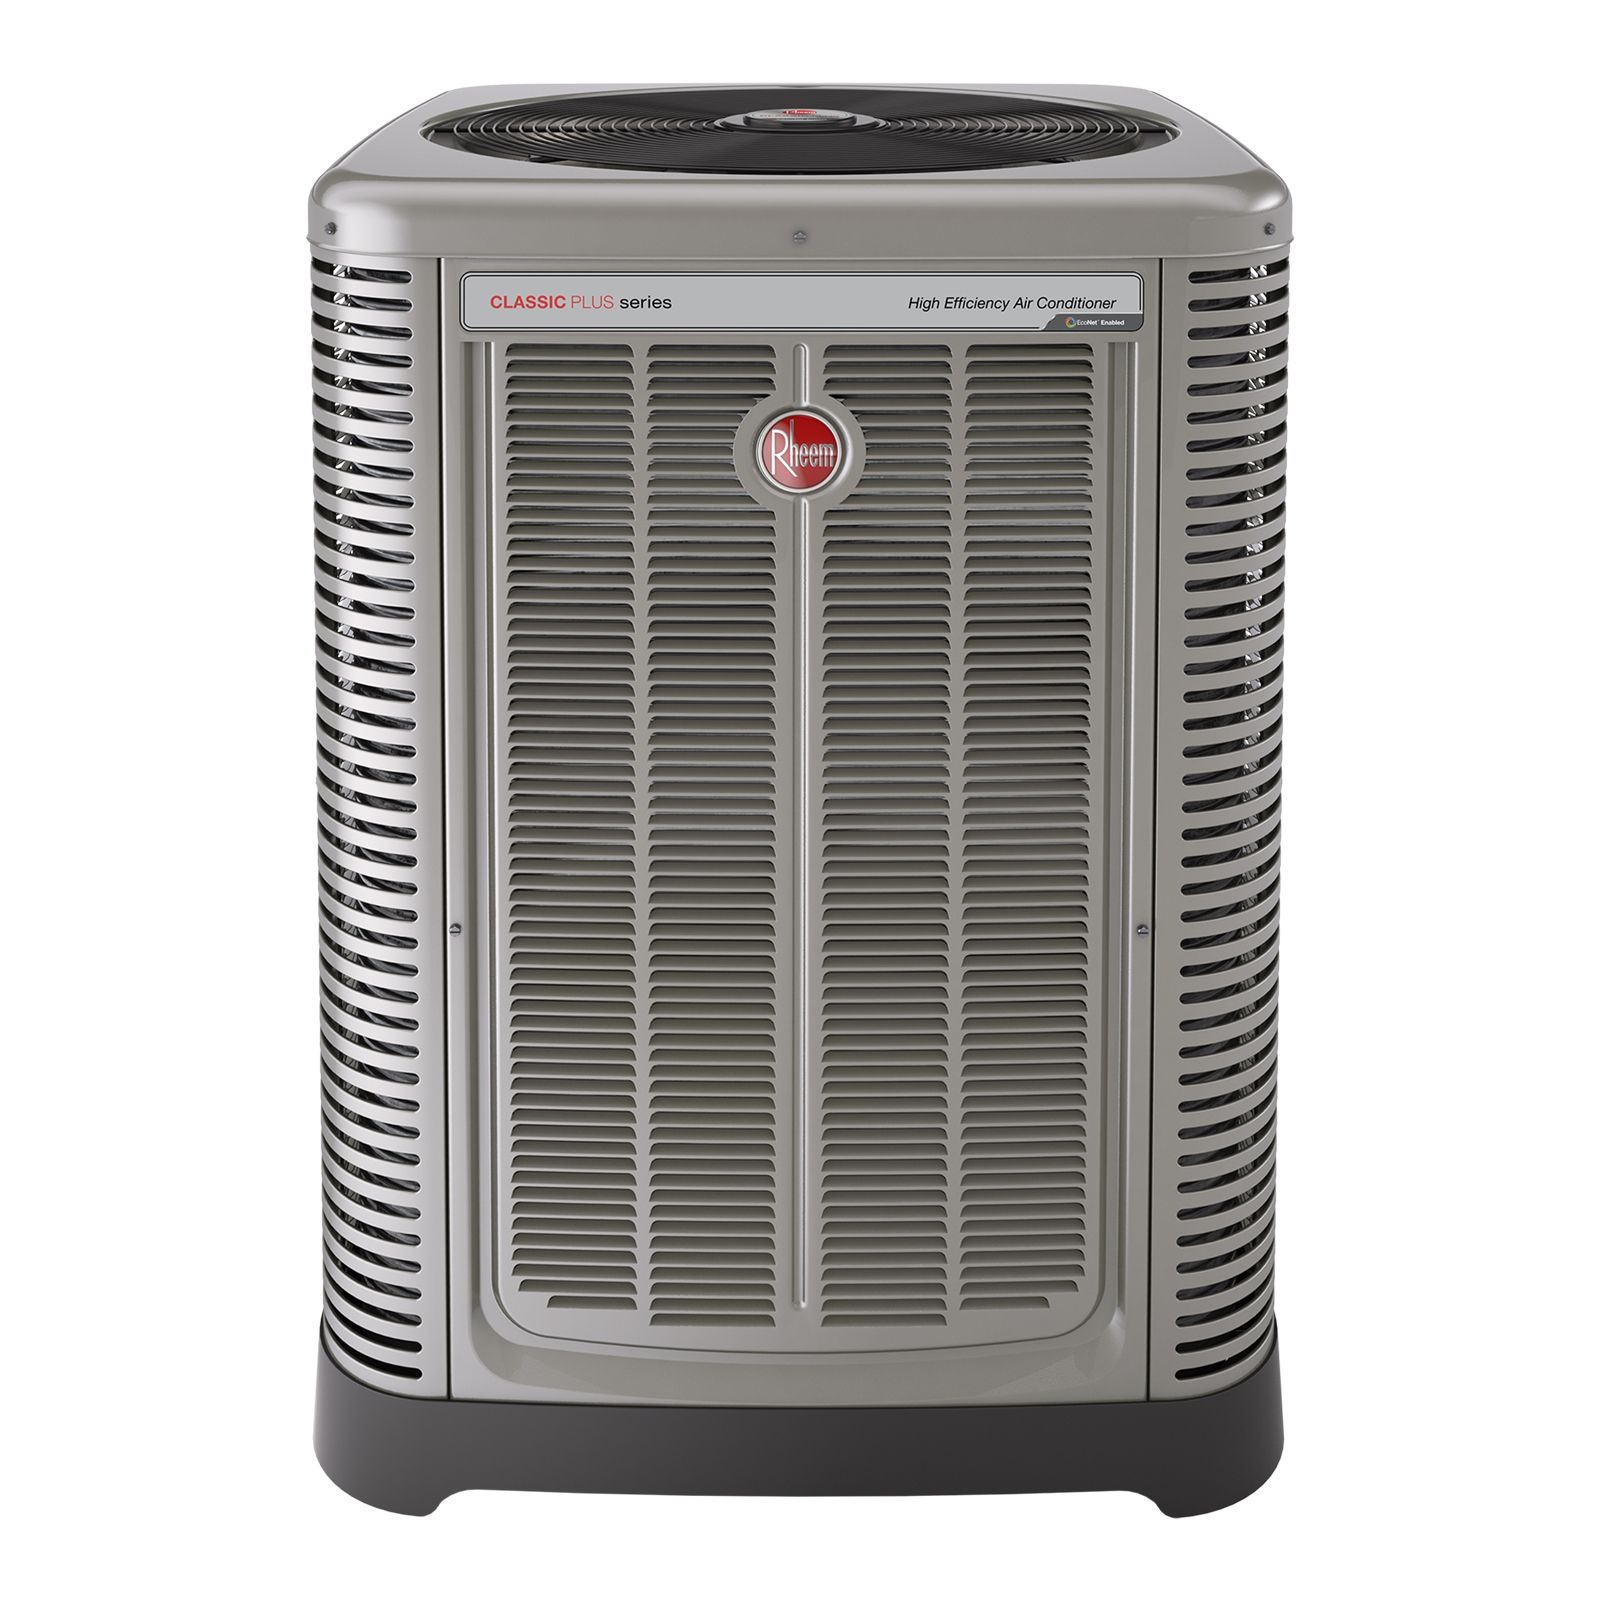 Rheem Ra1736aj2cb Classic Plus 3 Ton 17 Seer Two Stage Econet Marvair Air Conditioners Wiring Diagrams Enabled Conditioner 208 230 1 60